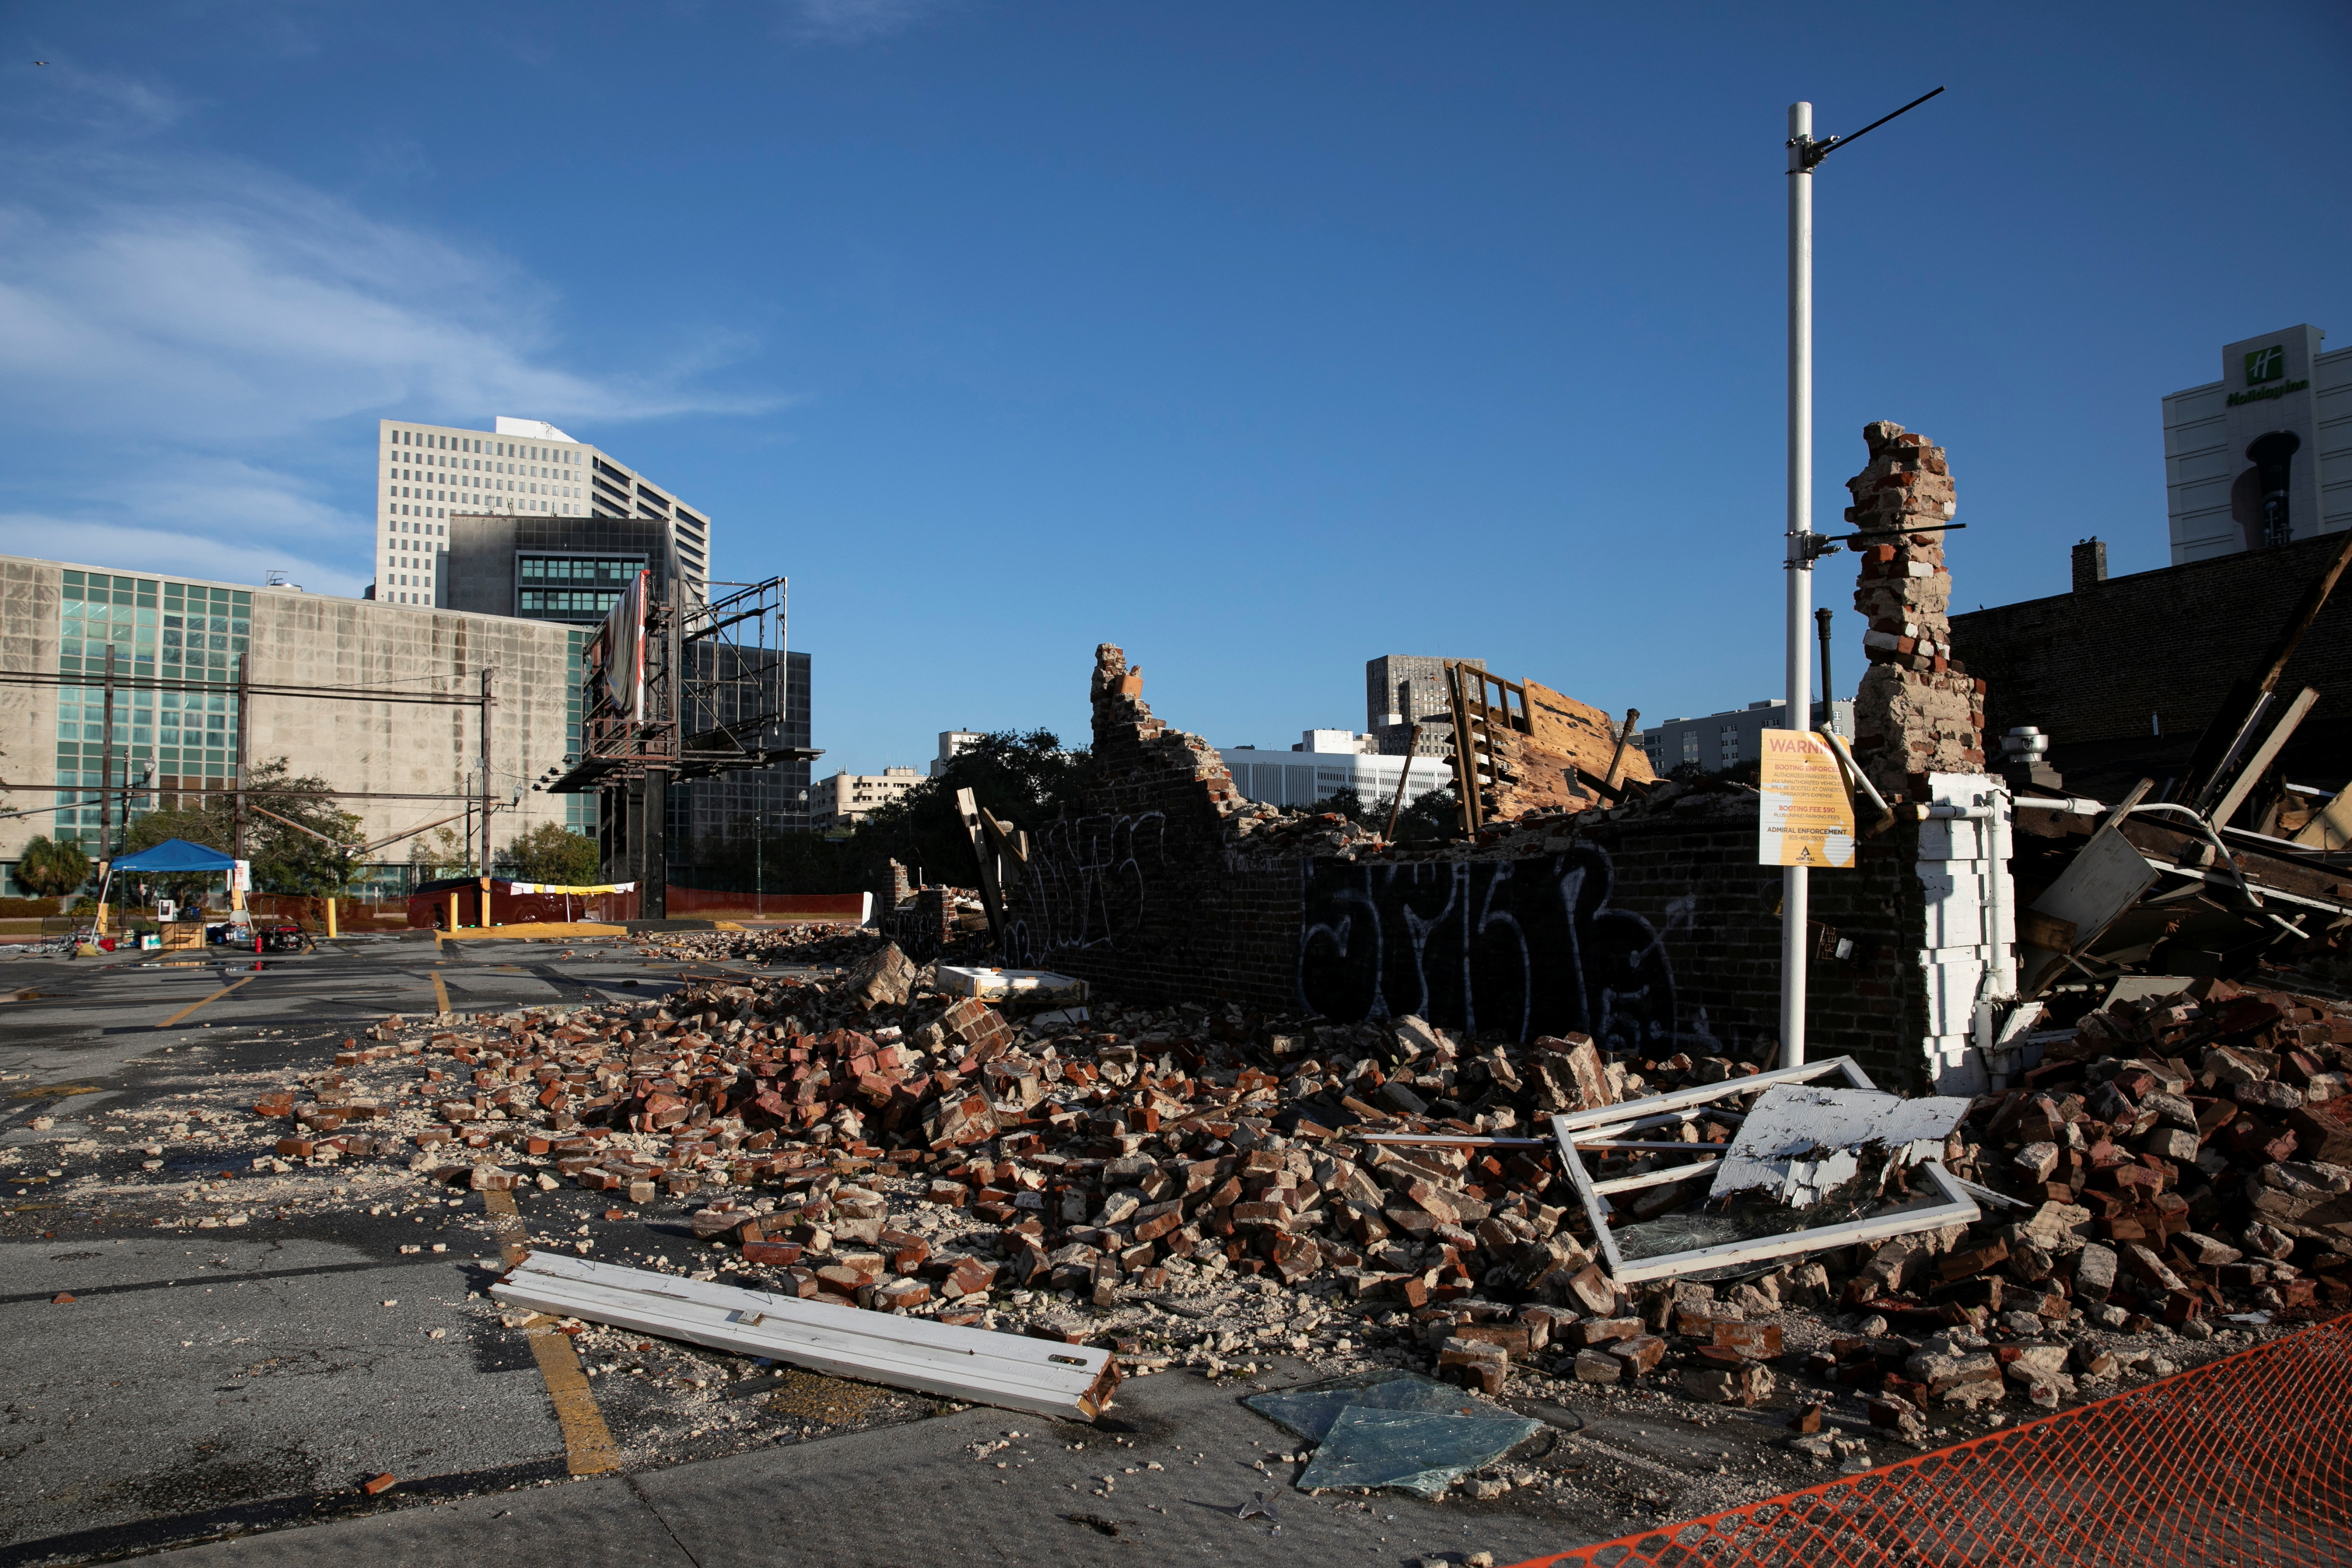 the remains of a destroyed building are seen after Hurricane Ida made landfall in Louisiana, U.S.